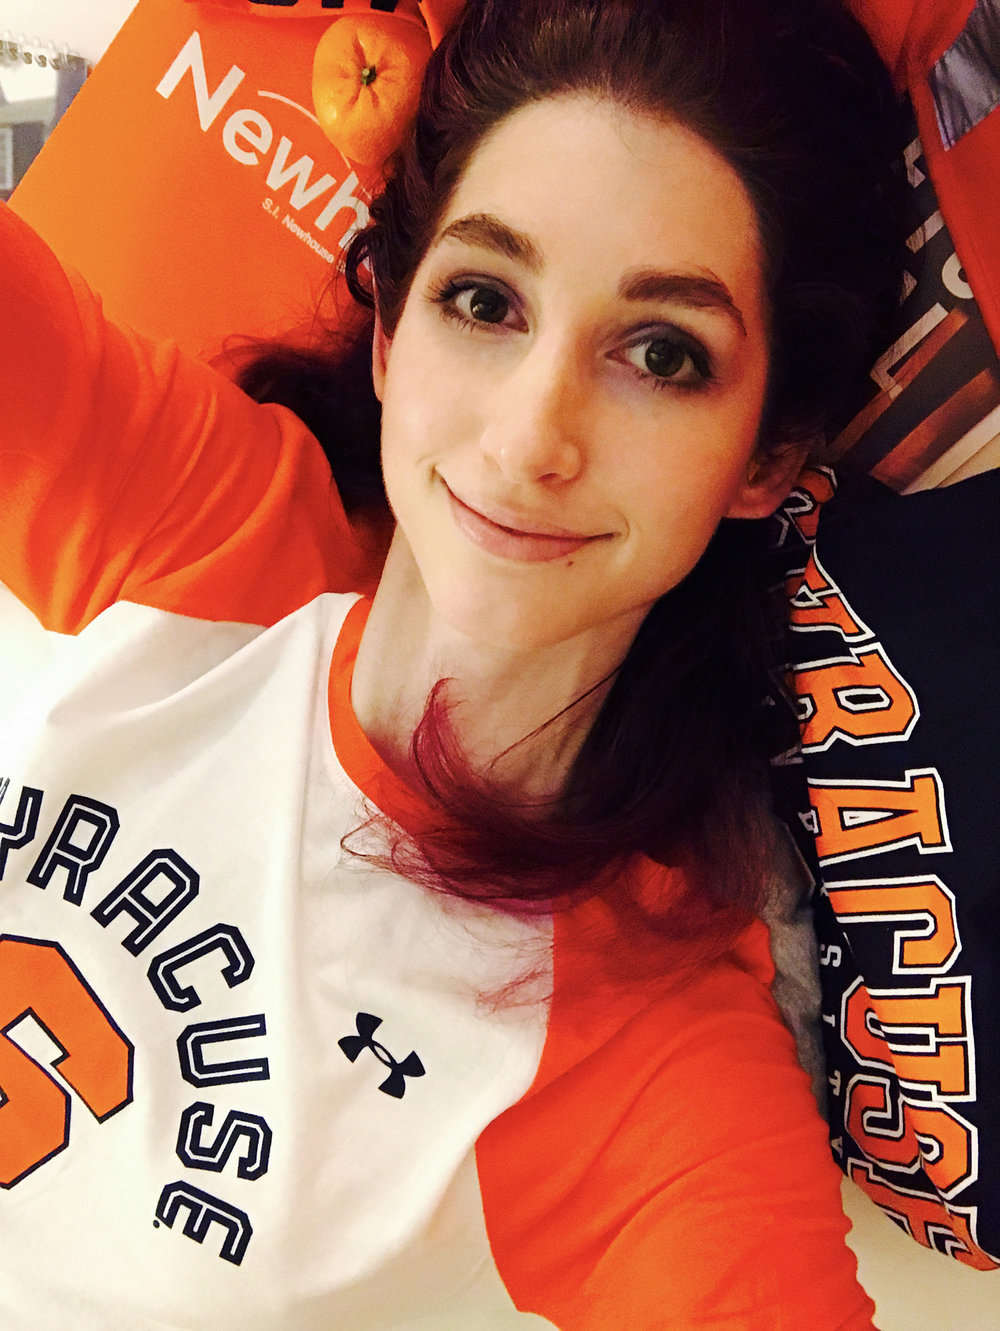 """I'm so excited to get my Masters in Arts Journalism at Syracuse University Newhouse School! I clearly went overboard on the branded swag - but totally worth it!"""